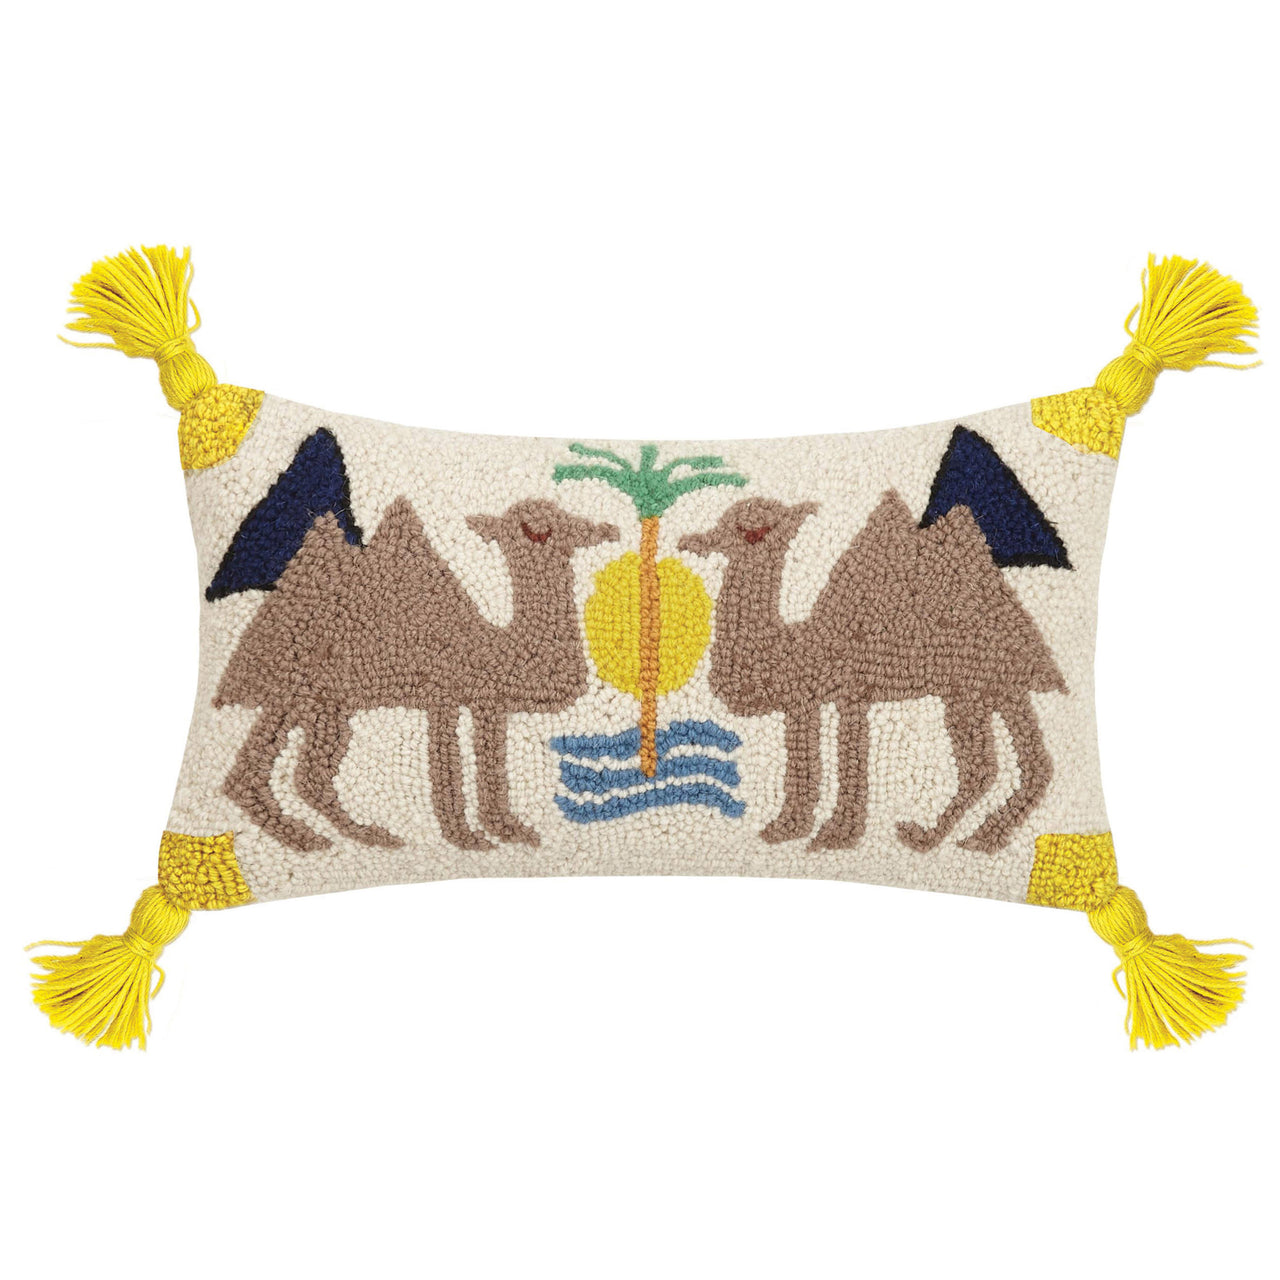 Dune with Tassels Wool Hooked Throw Pillow